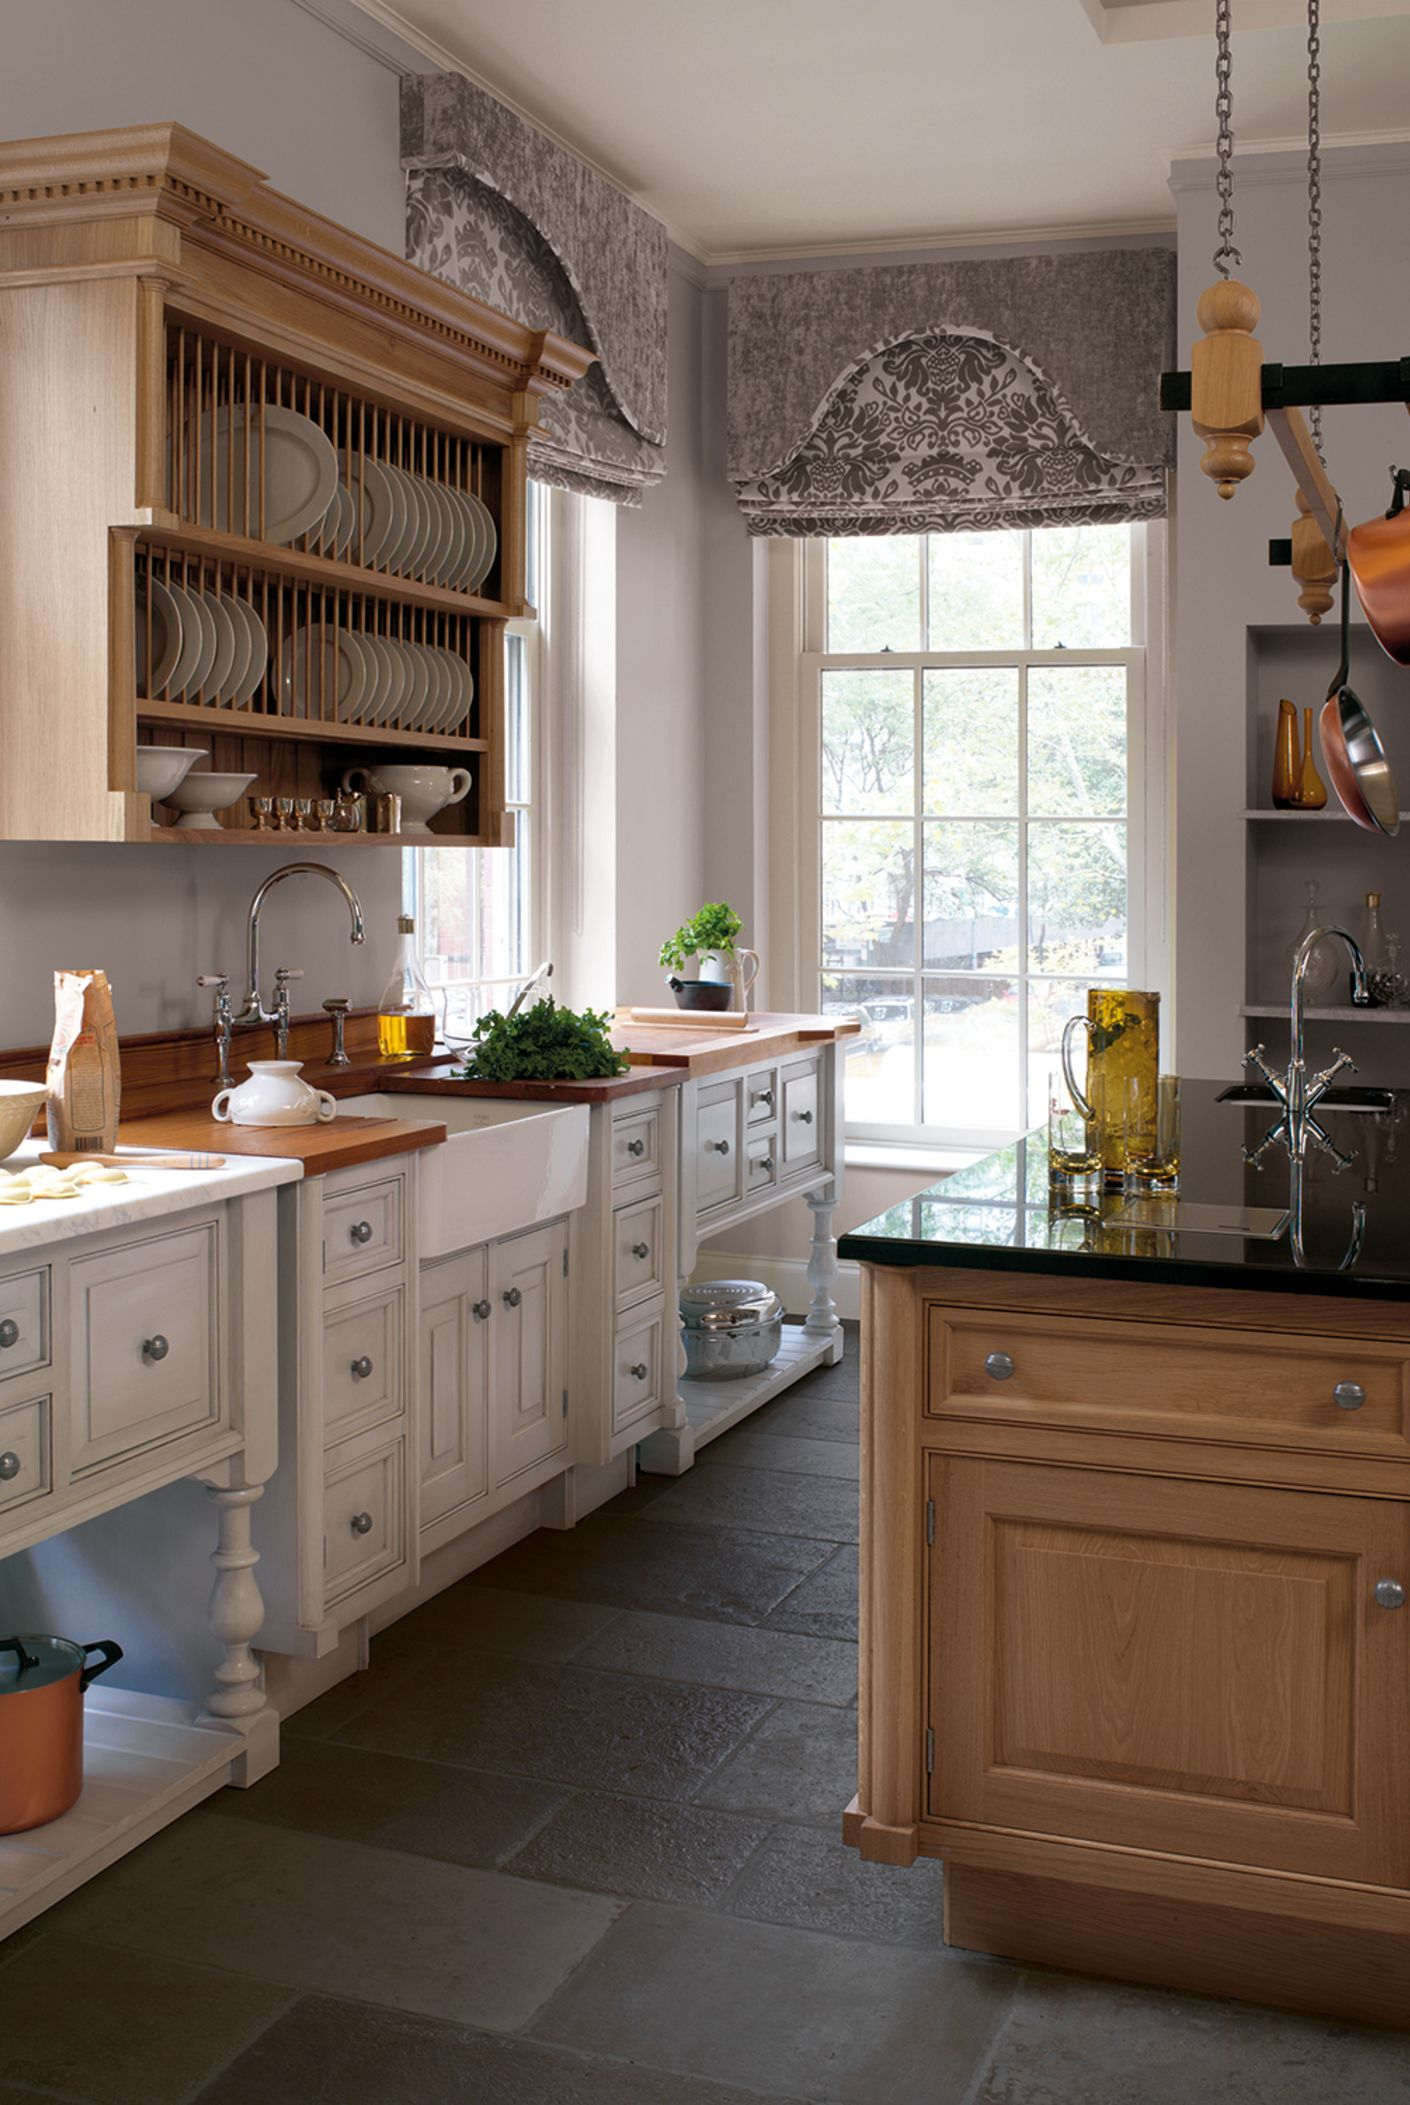 20 smallbone of devizes kitchen pilaster classic hand painted